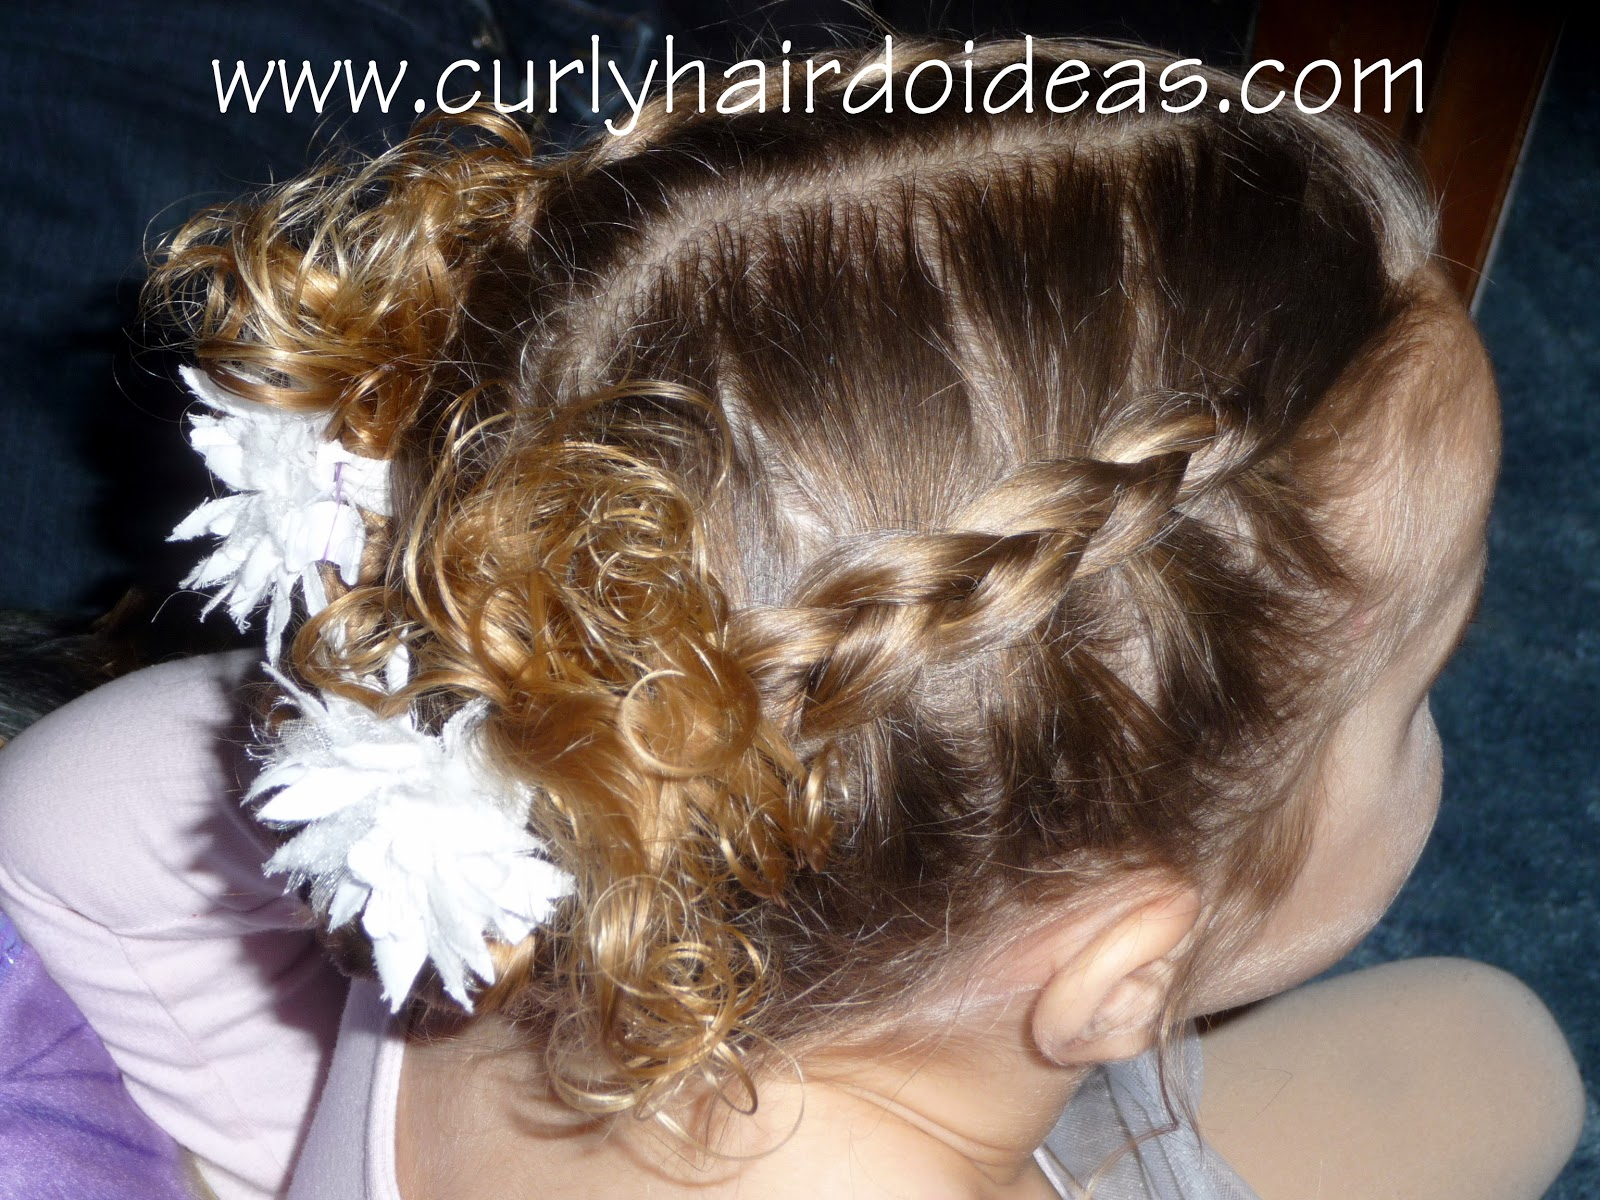 Hair Styles For A Dance: Curly Hairdo Ideas: Toddler Dance Hairstyle